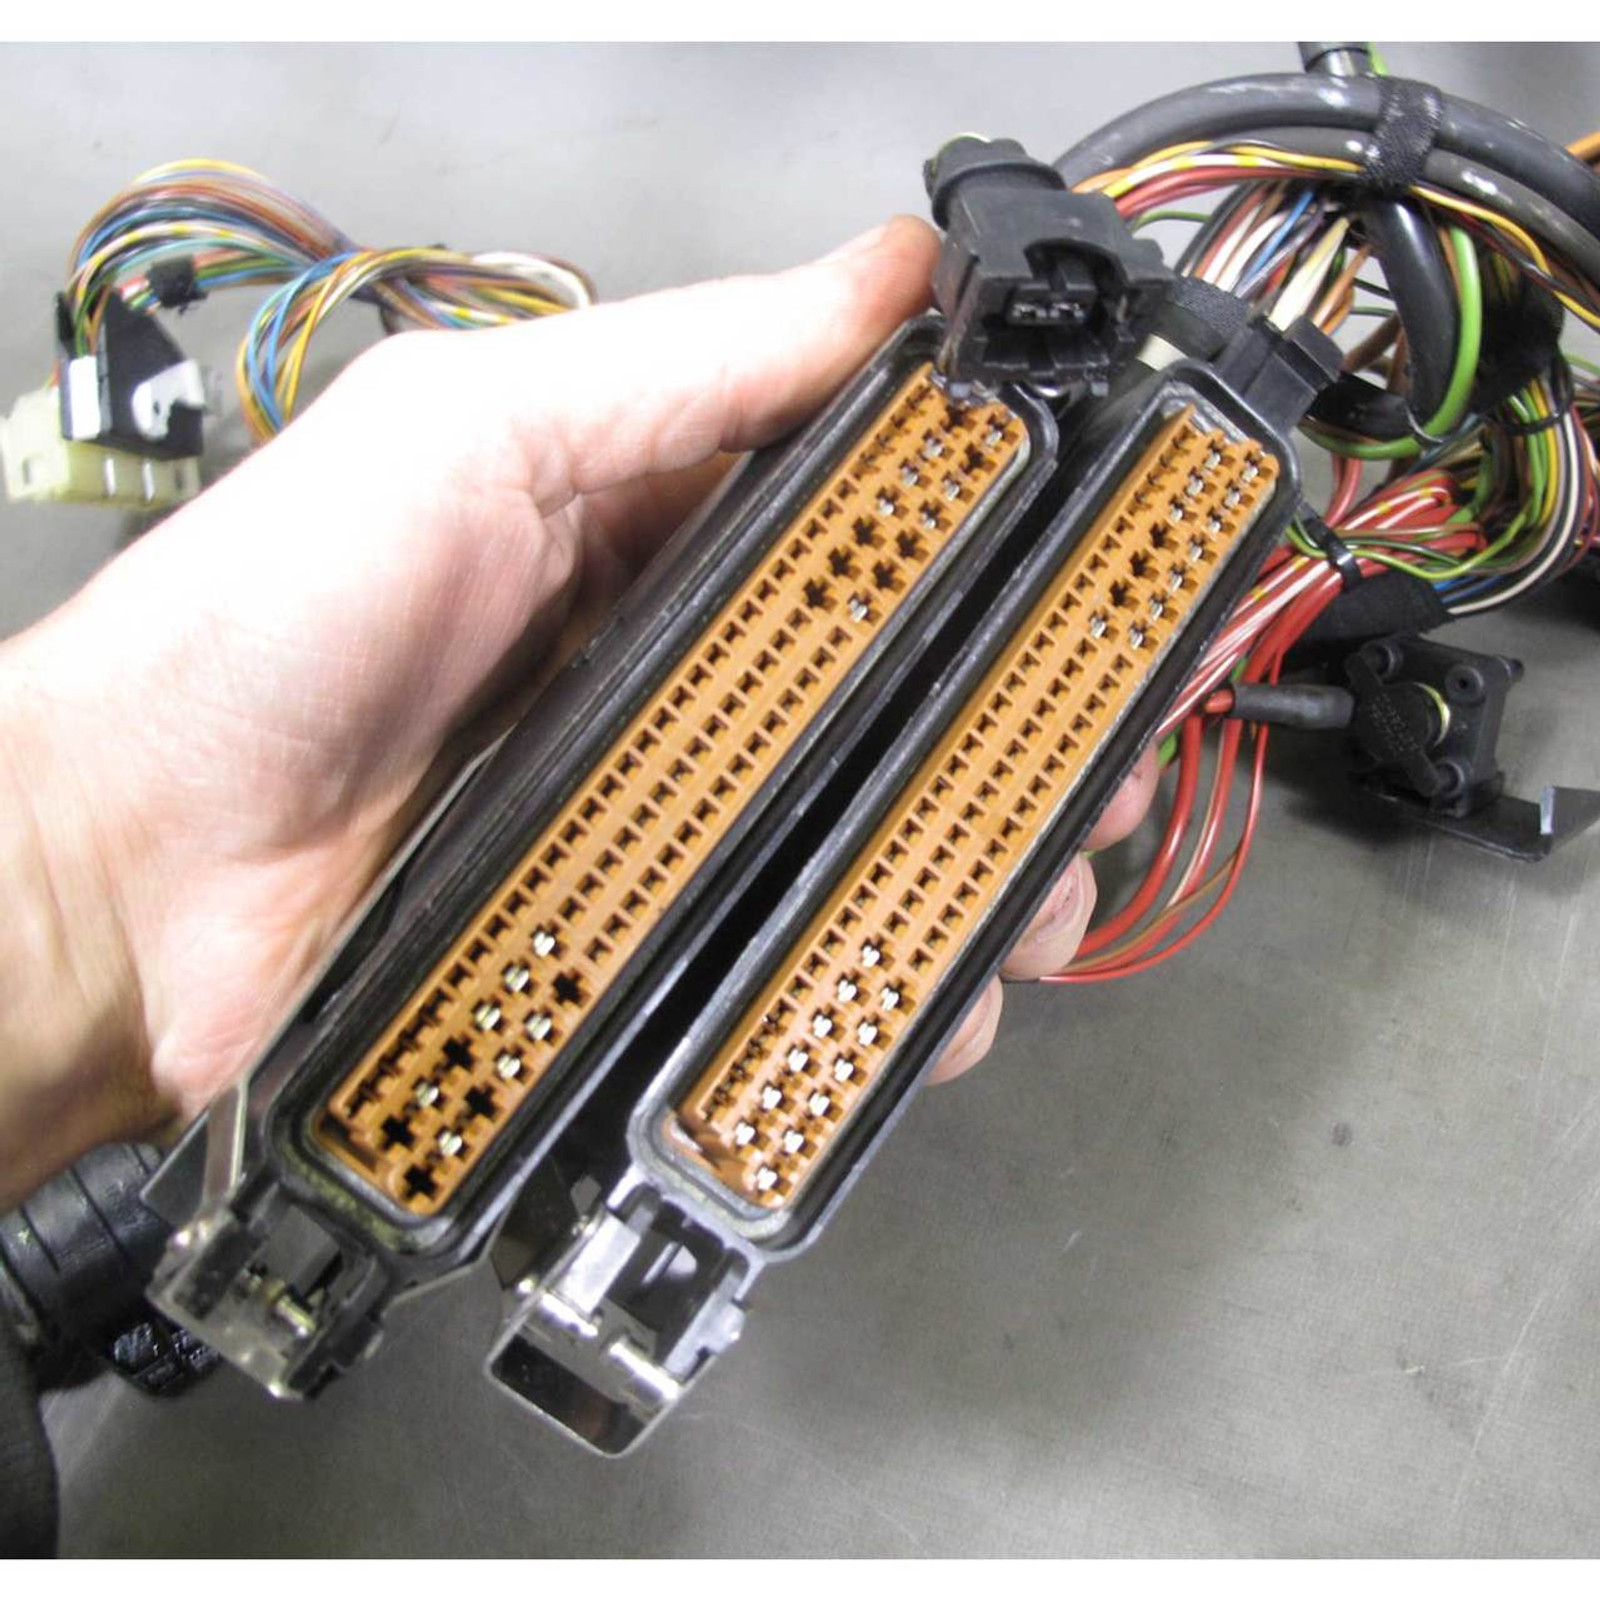 E39 Wiring Harness - Wiring Diagram Structure